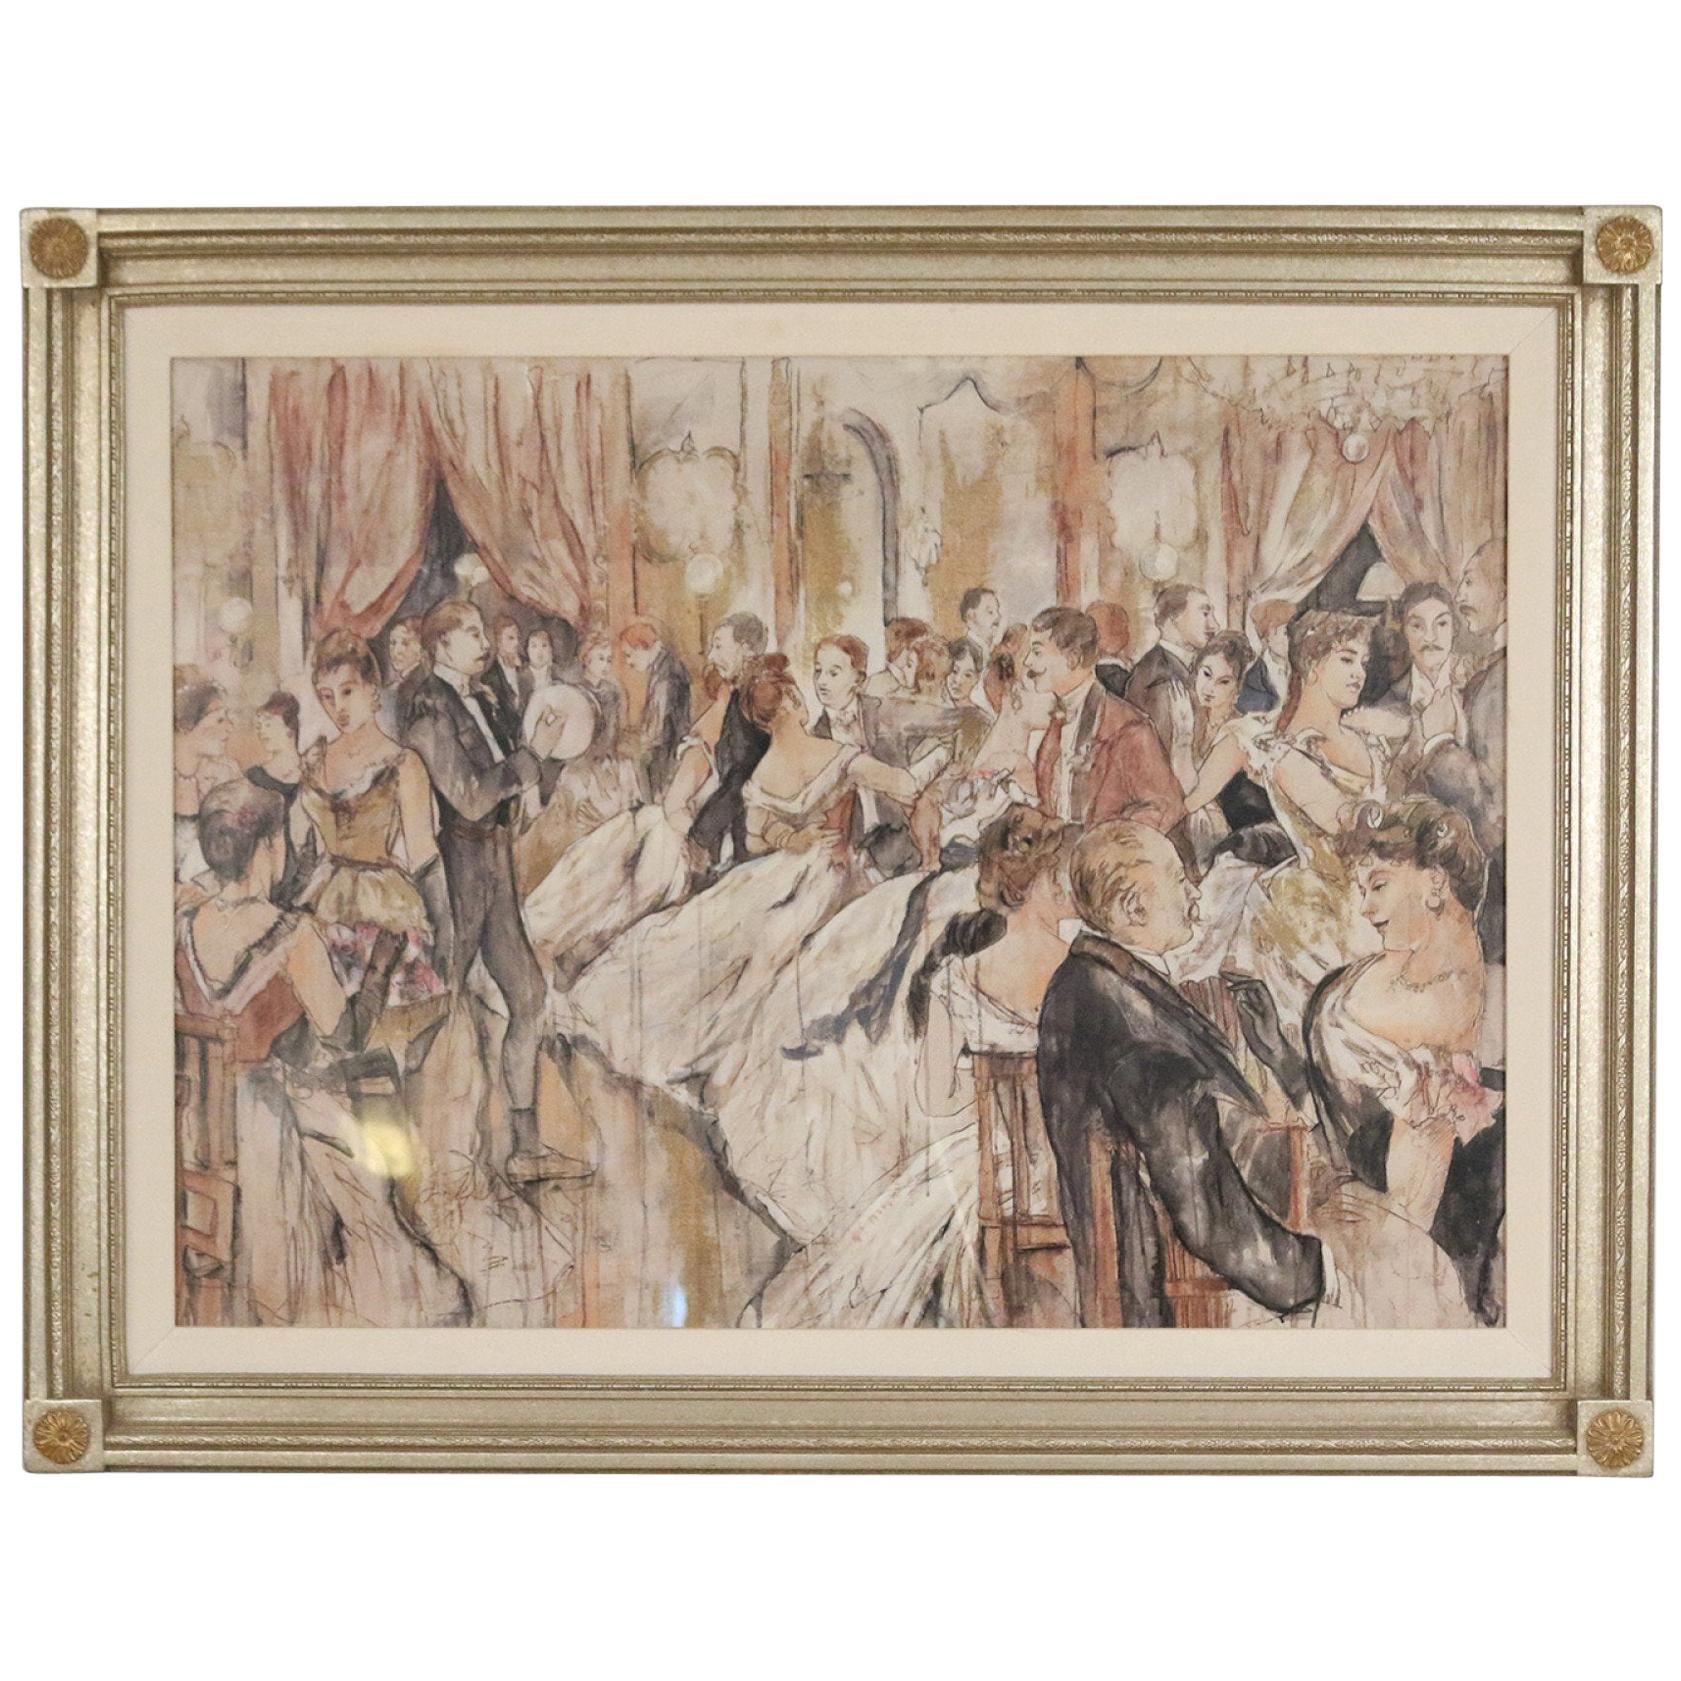 Pen and Ink Silver Framed Drawing of a Belle Époque Ballroom Scene